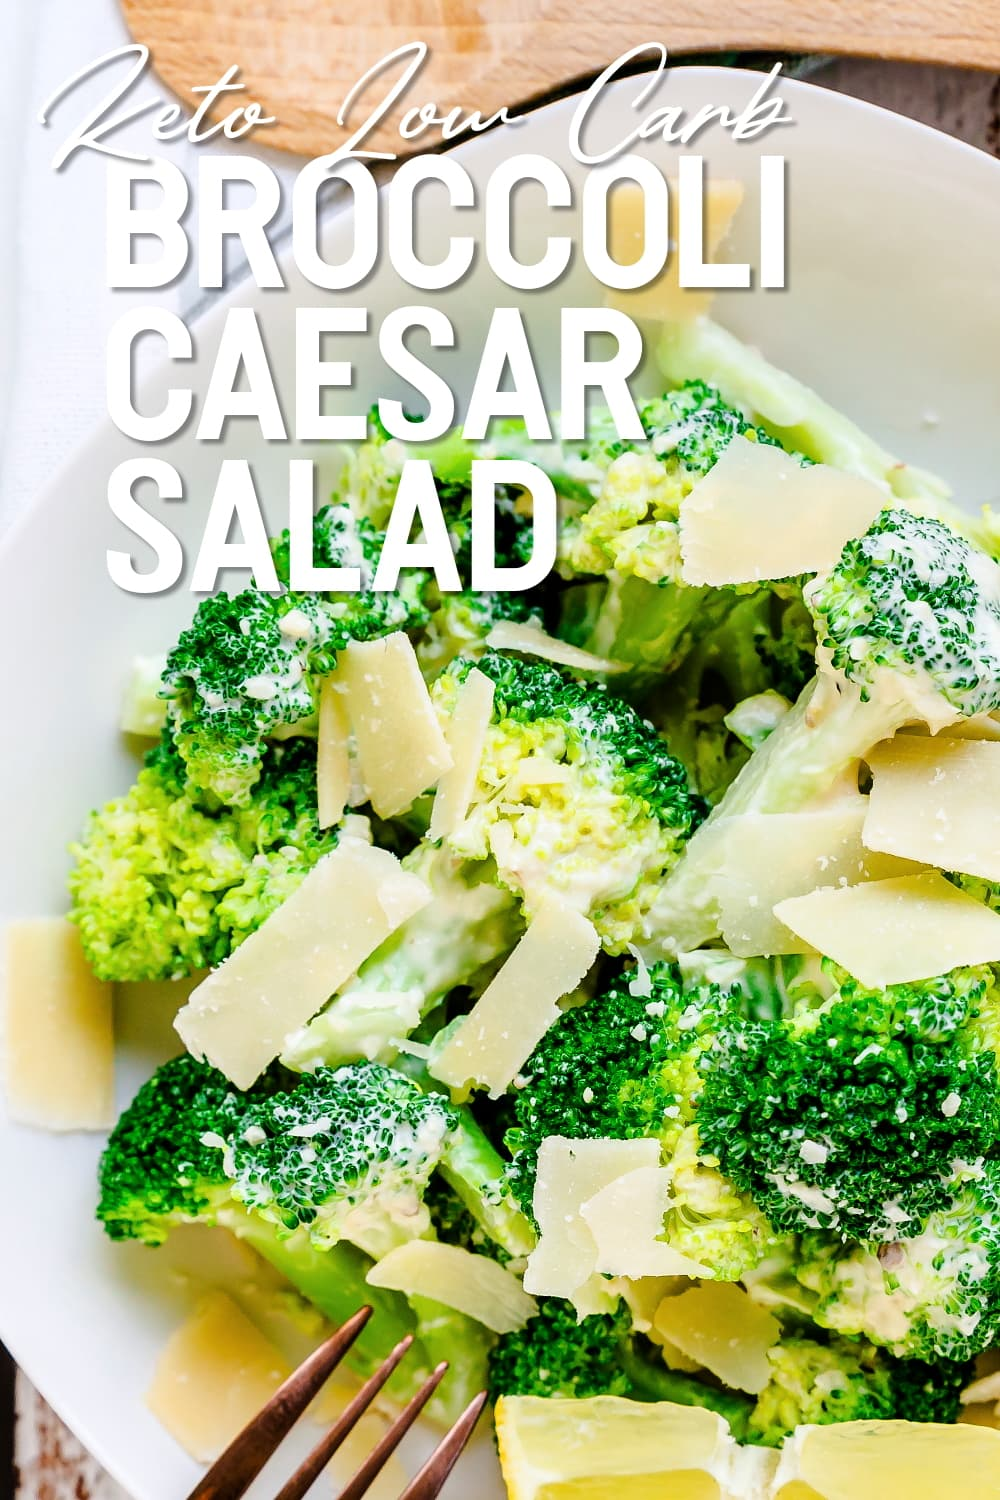 Broccoli Caesar Salad served in a bowl